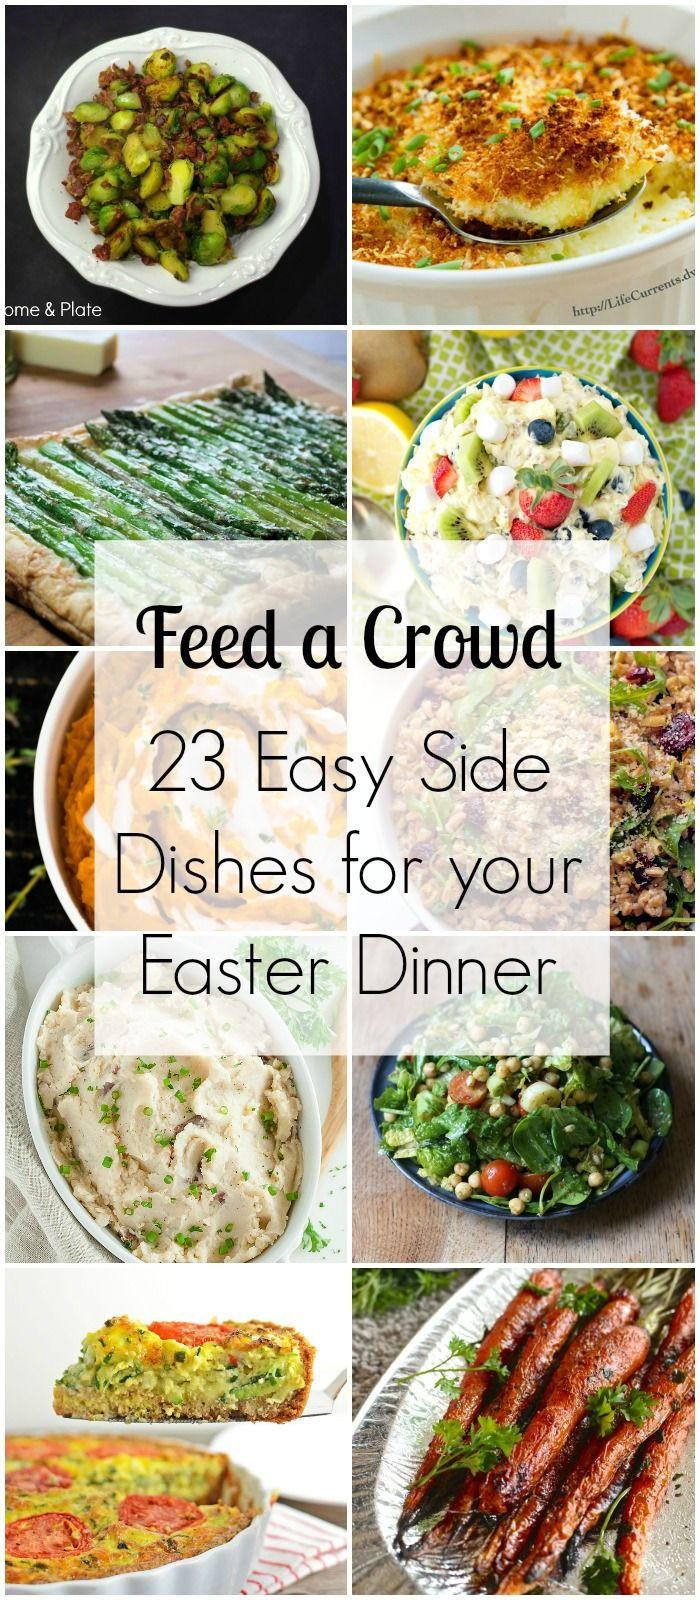 Make Ahead Easter Side Dishes  Mar 21 23 Easy Side Dishes for your Easter Dinner Feed a